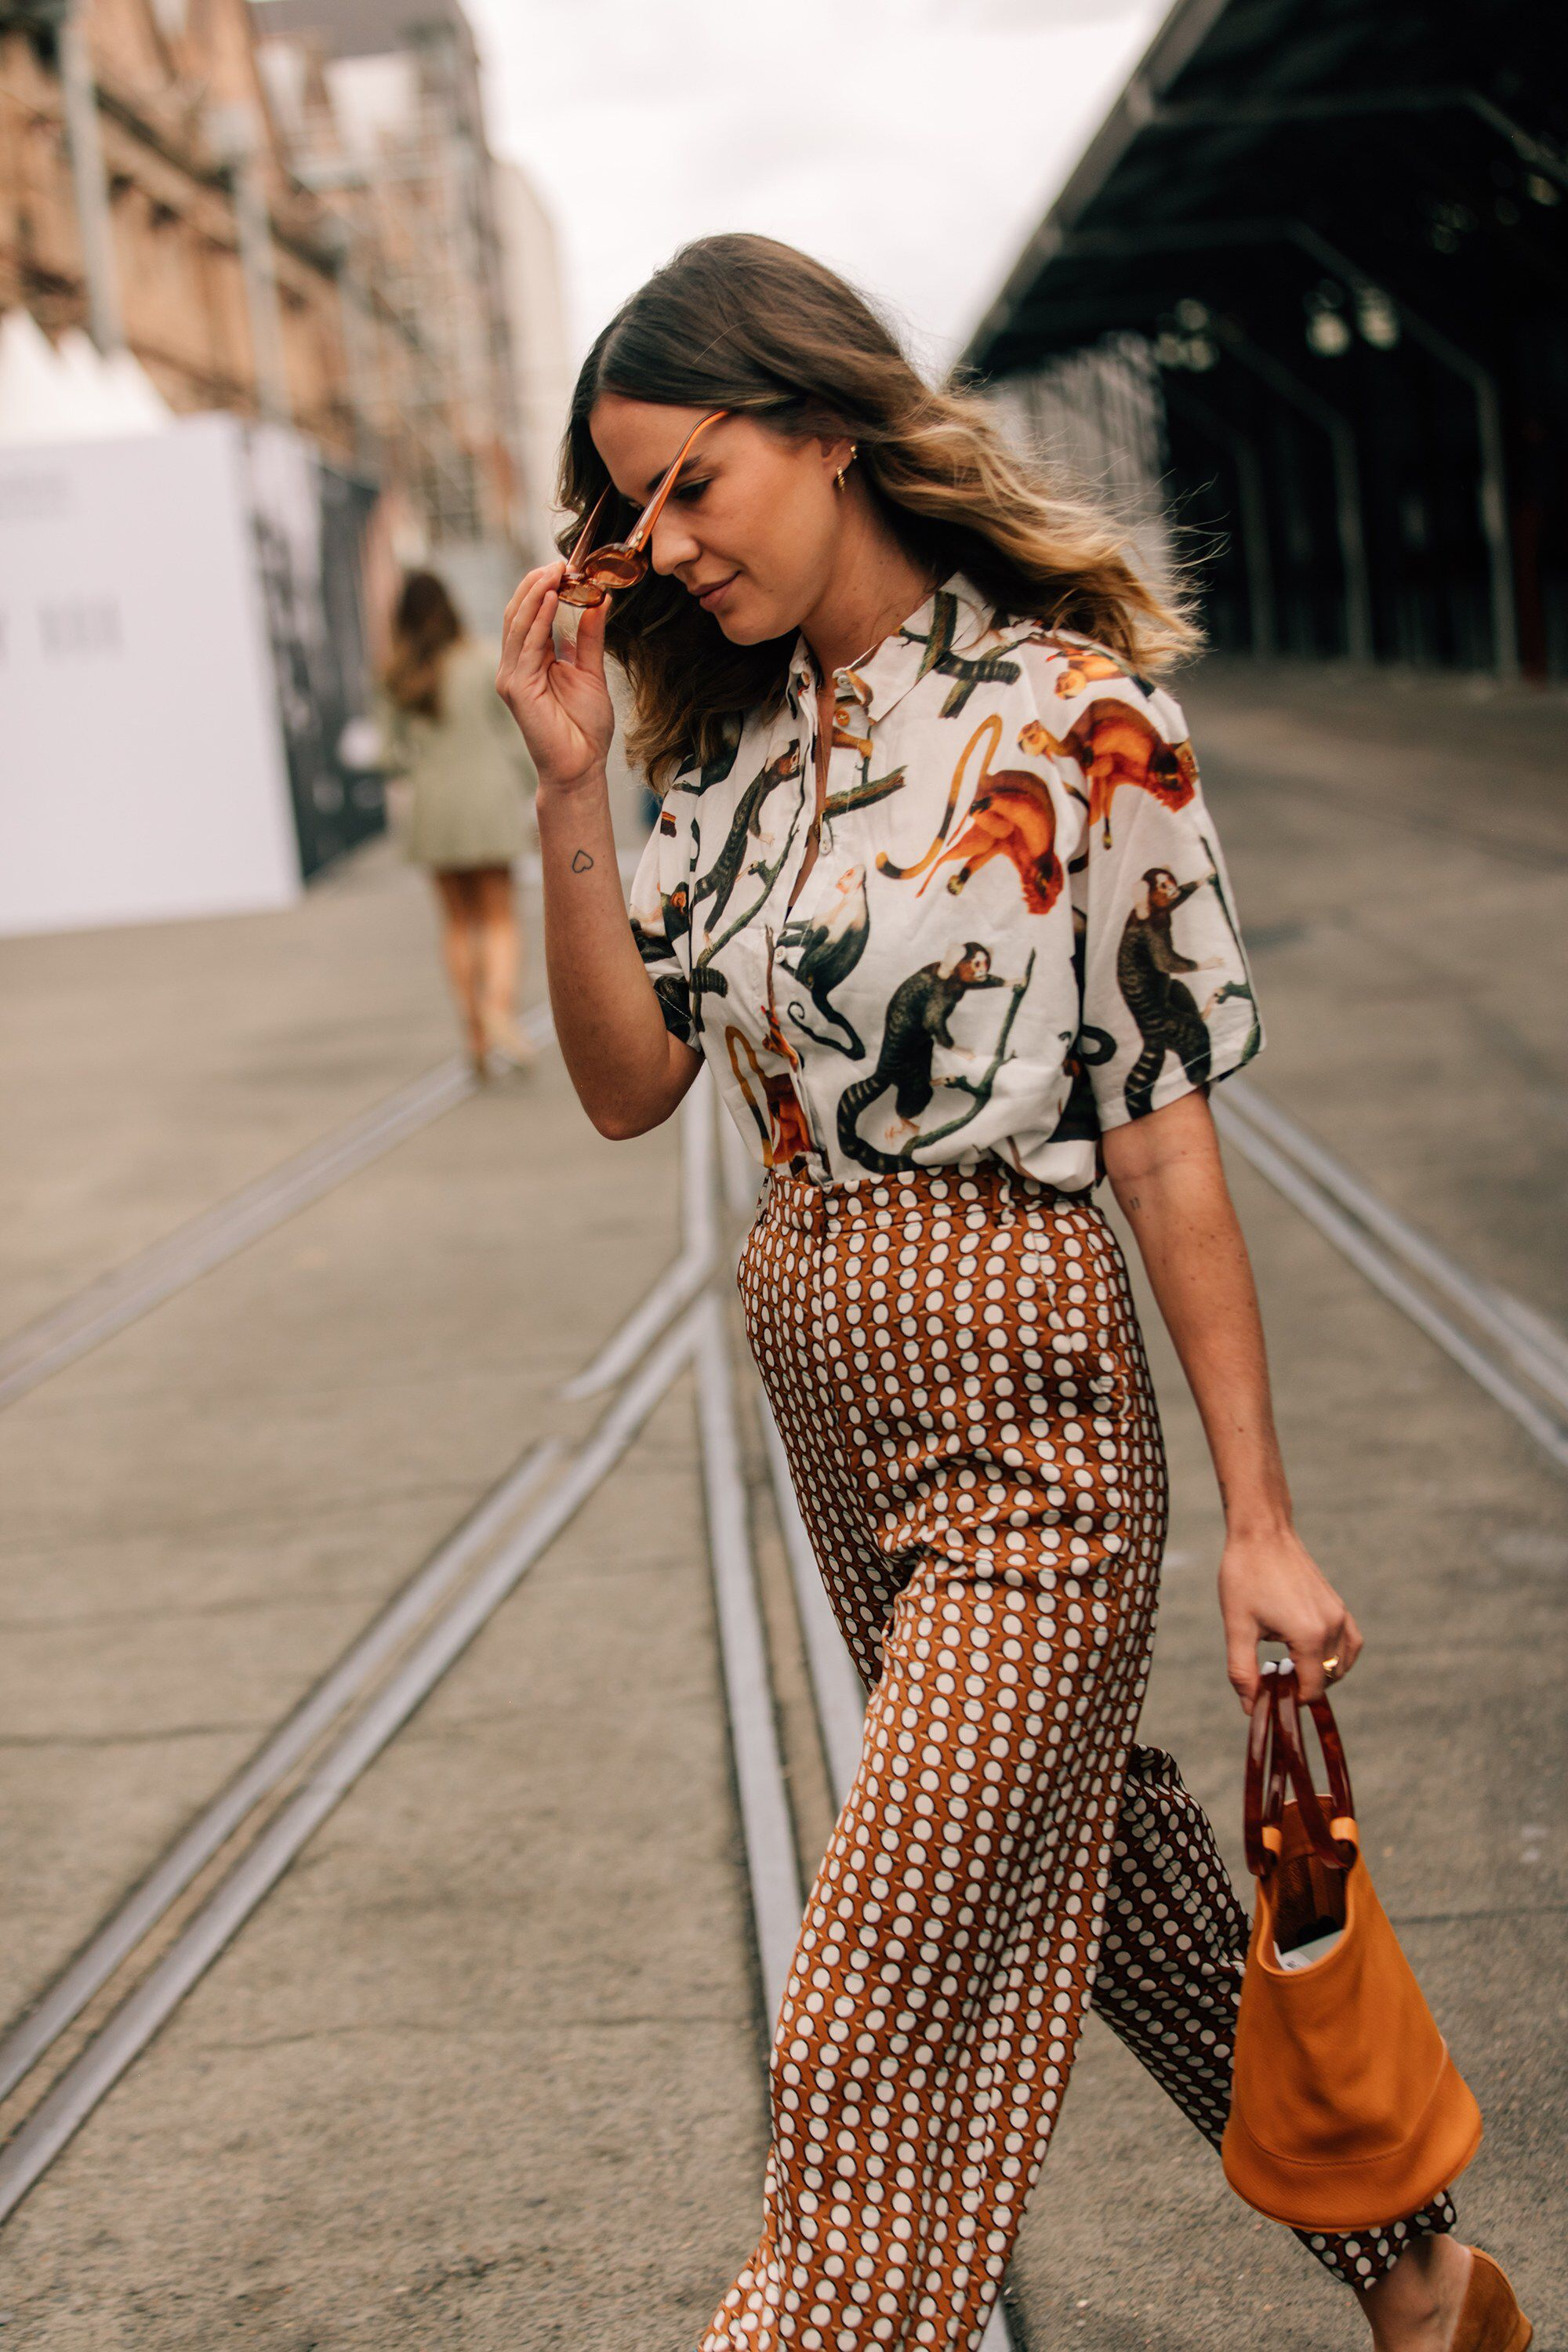 c654b7e5b27 The Best Street Style From Australian Fashion Week  Dan Roberts captures  the best looks in Sydney during the Resort 2019 shows in Australia.